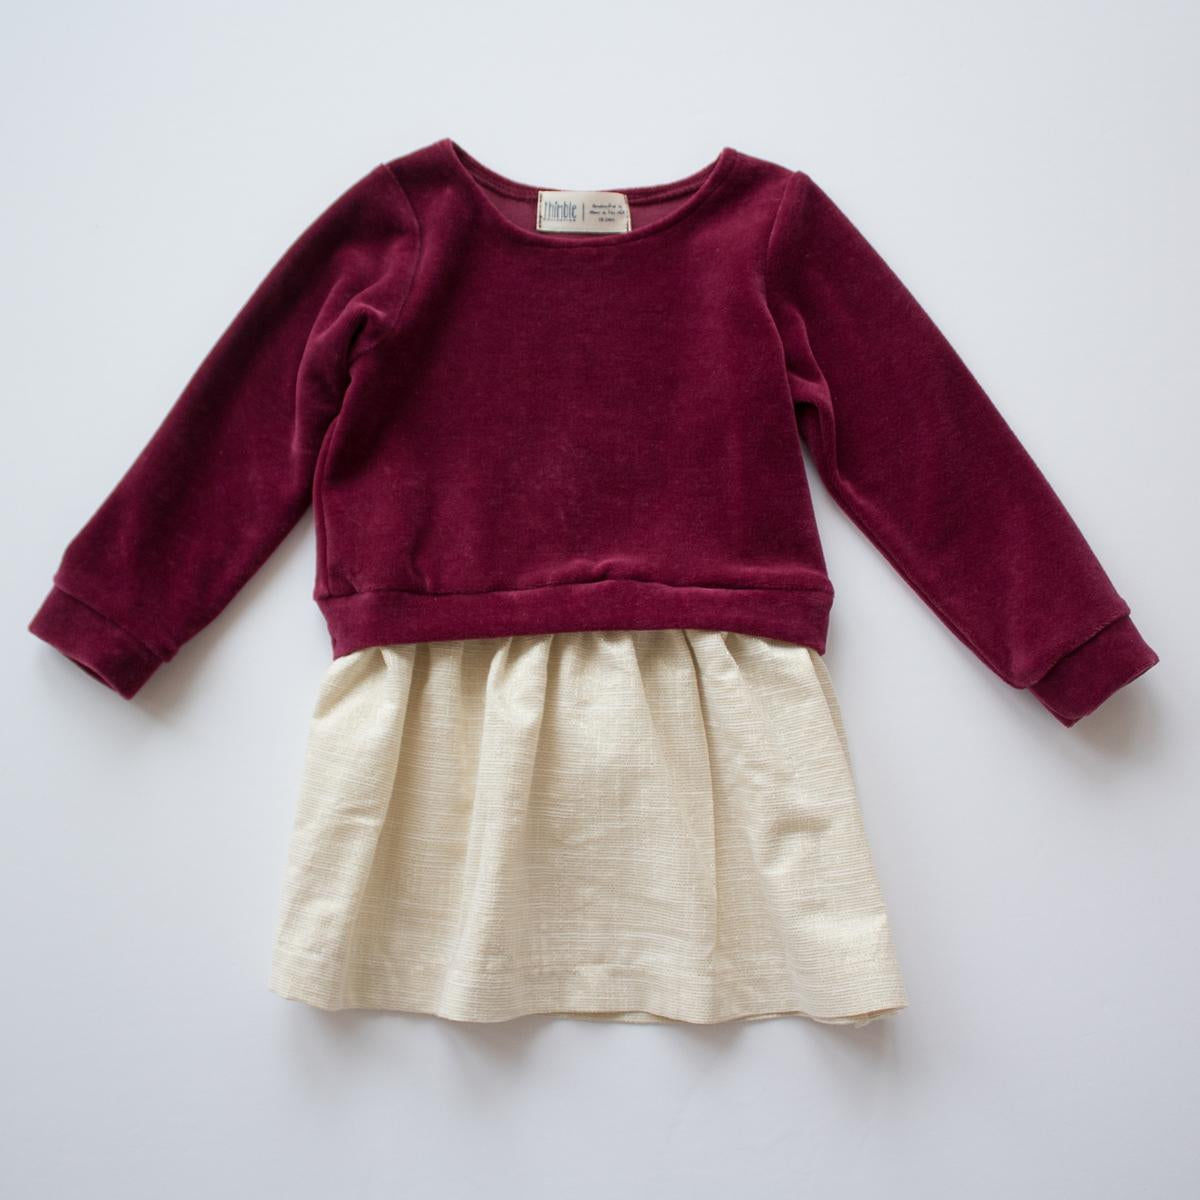 Thimble Sweatshirt Dress in Holiday Red